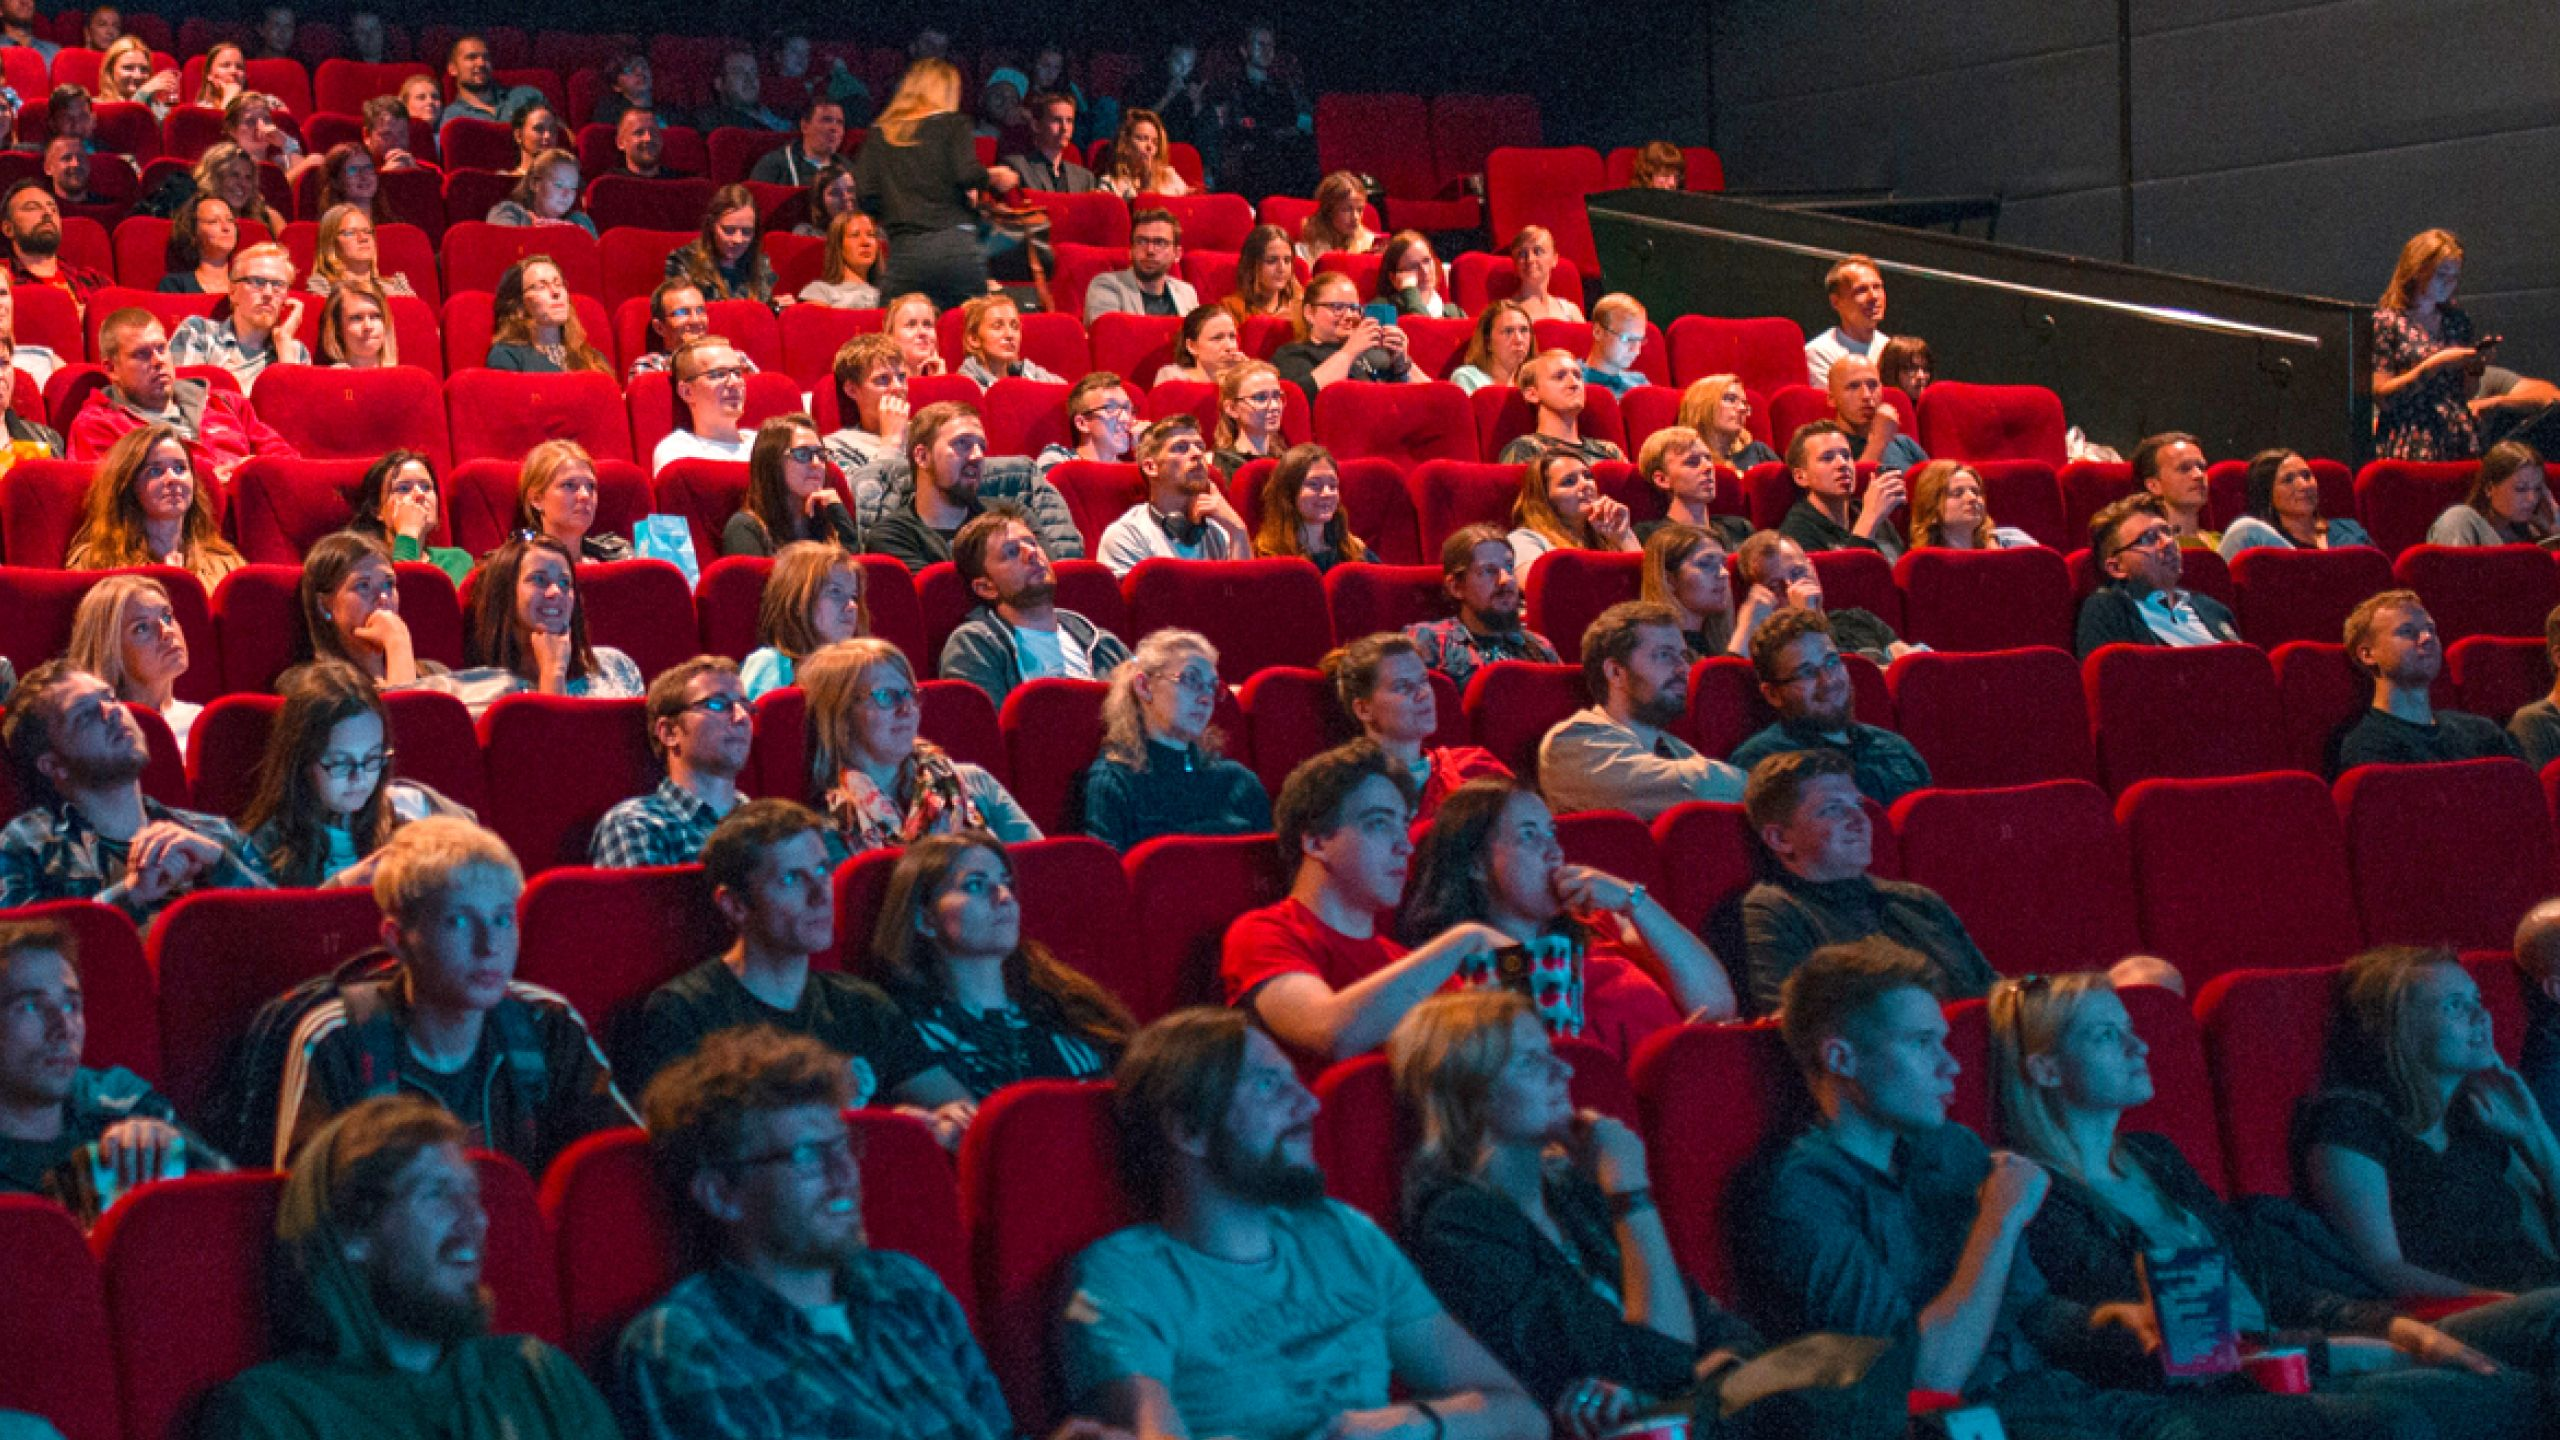 People sitting in a crowded movie theater